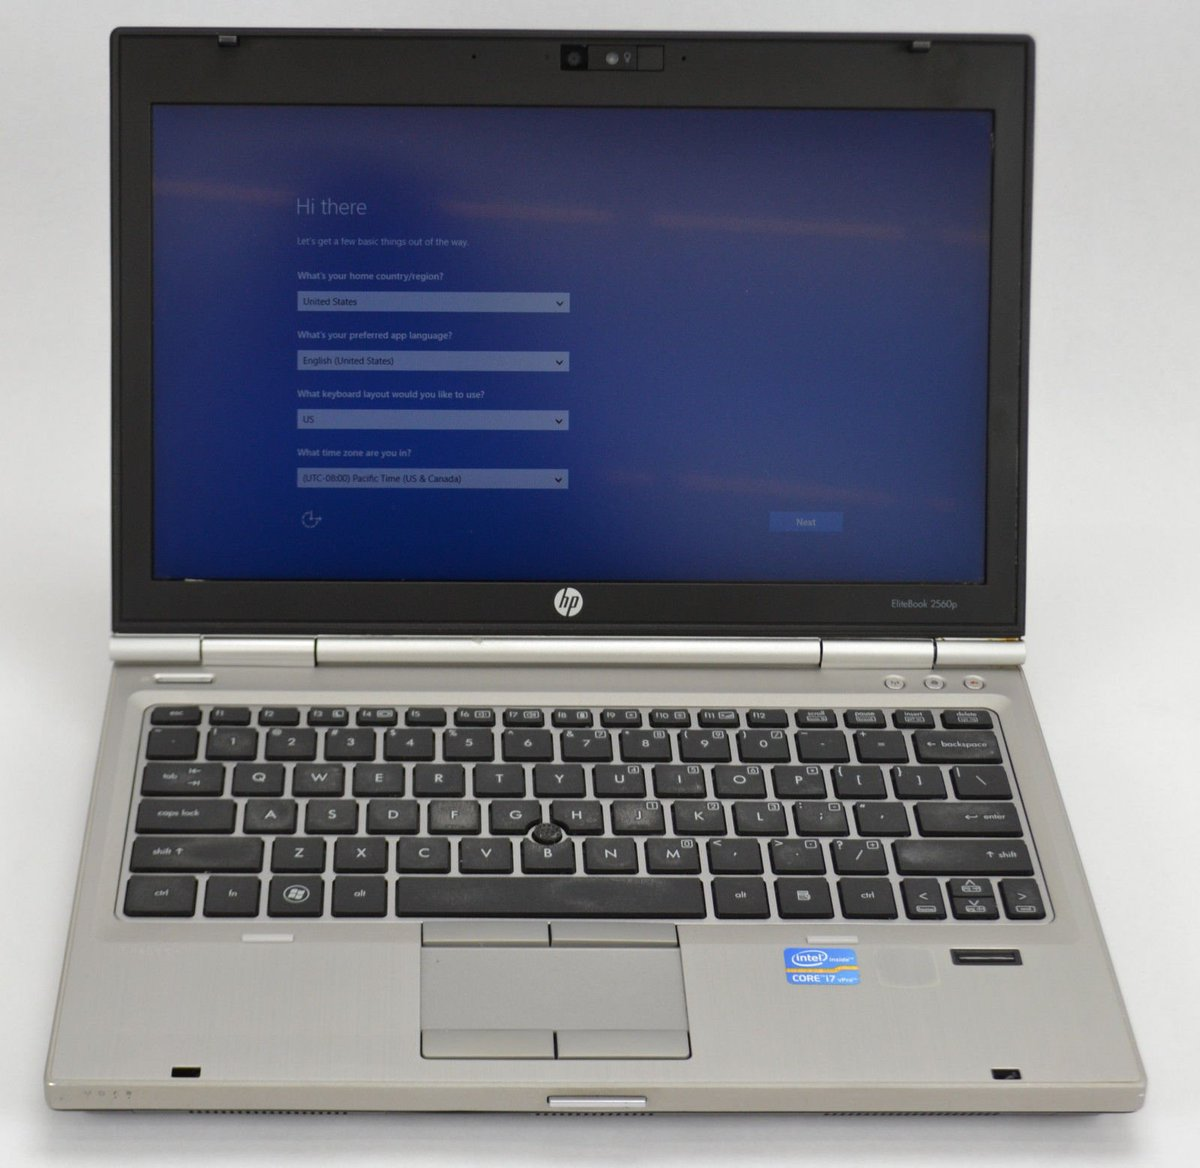 Jm69 Hashtag On Twitter Hp Elitebook 2560p Core I7 0 Replies Retweets Likes